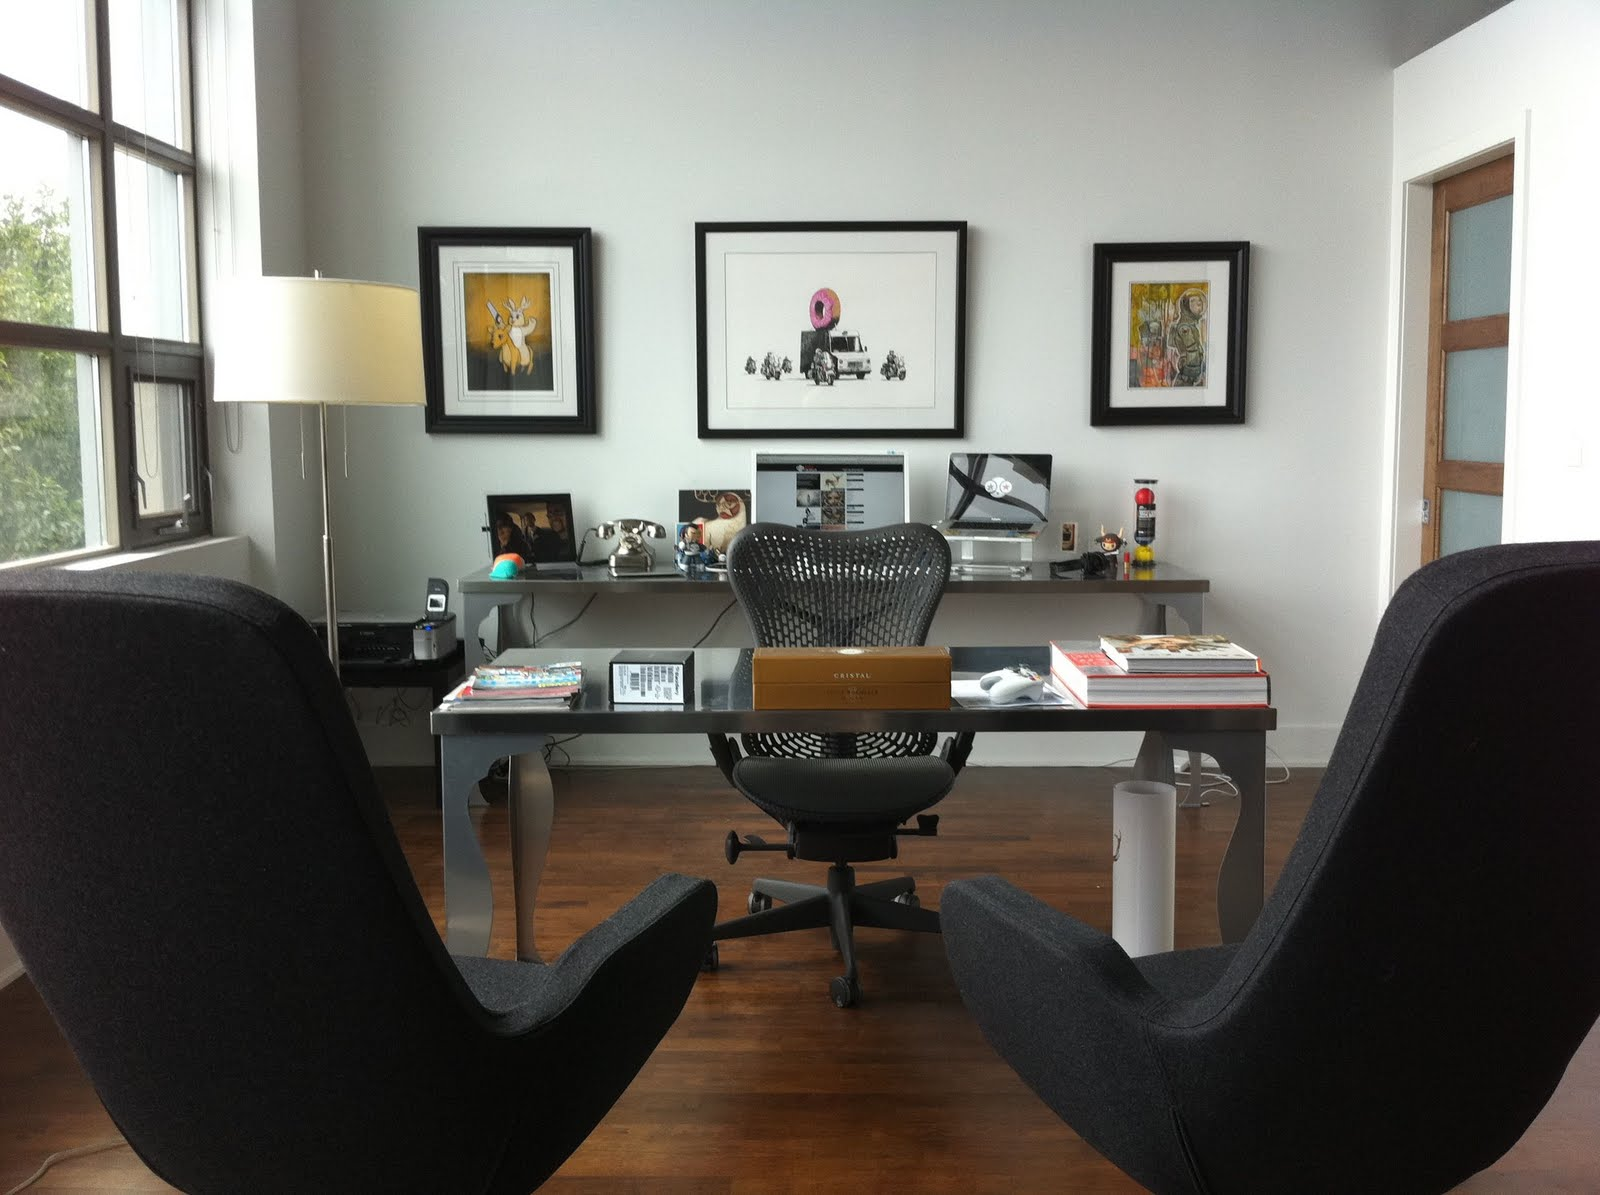 Nice-Modern-Home-Office-With-Black-Guest-Chair-And-Photos-On-The-Wall-For-Creative-Home-Office-Design-For-Your-Imaginations